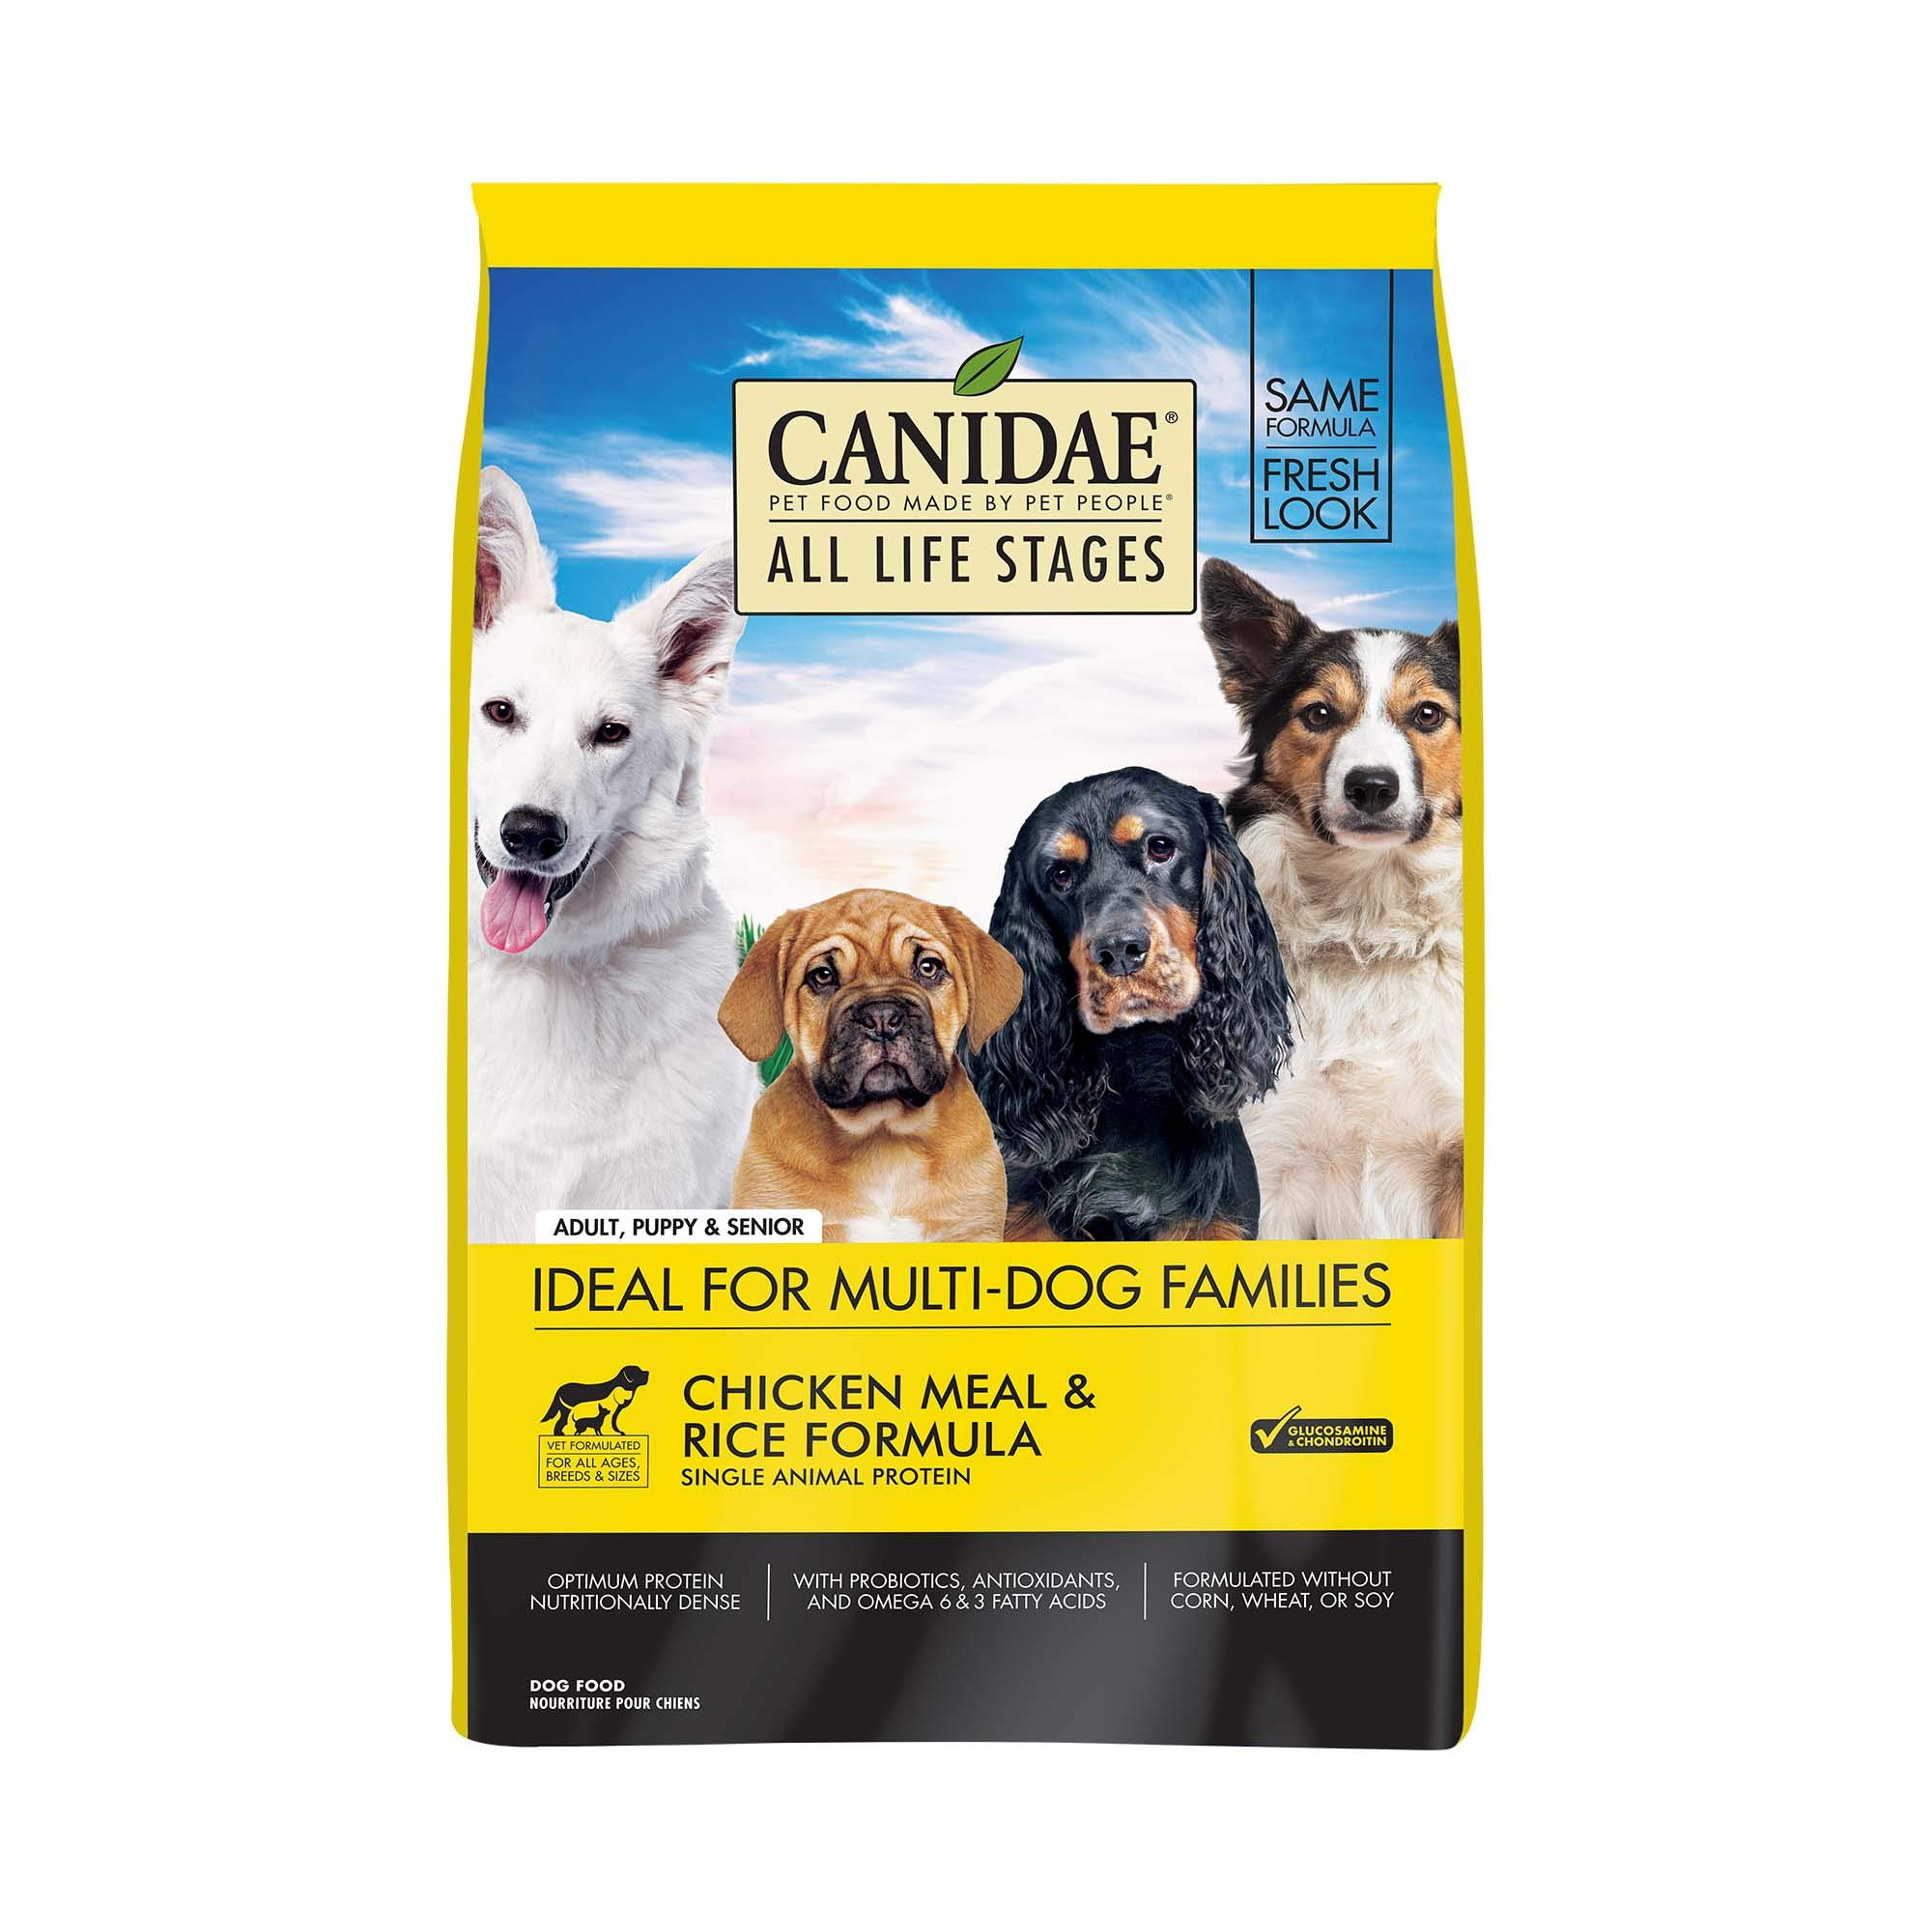 CANIDAE All Life Stages, Premium Dry Dog Food, Chicken & Rice Formula by CANIDAE